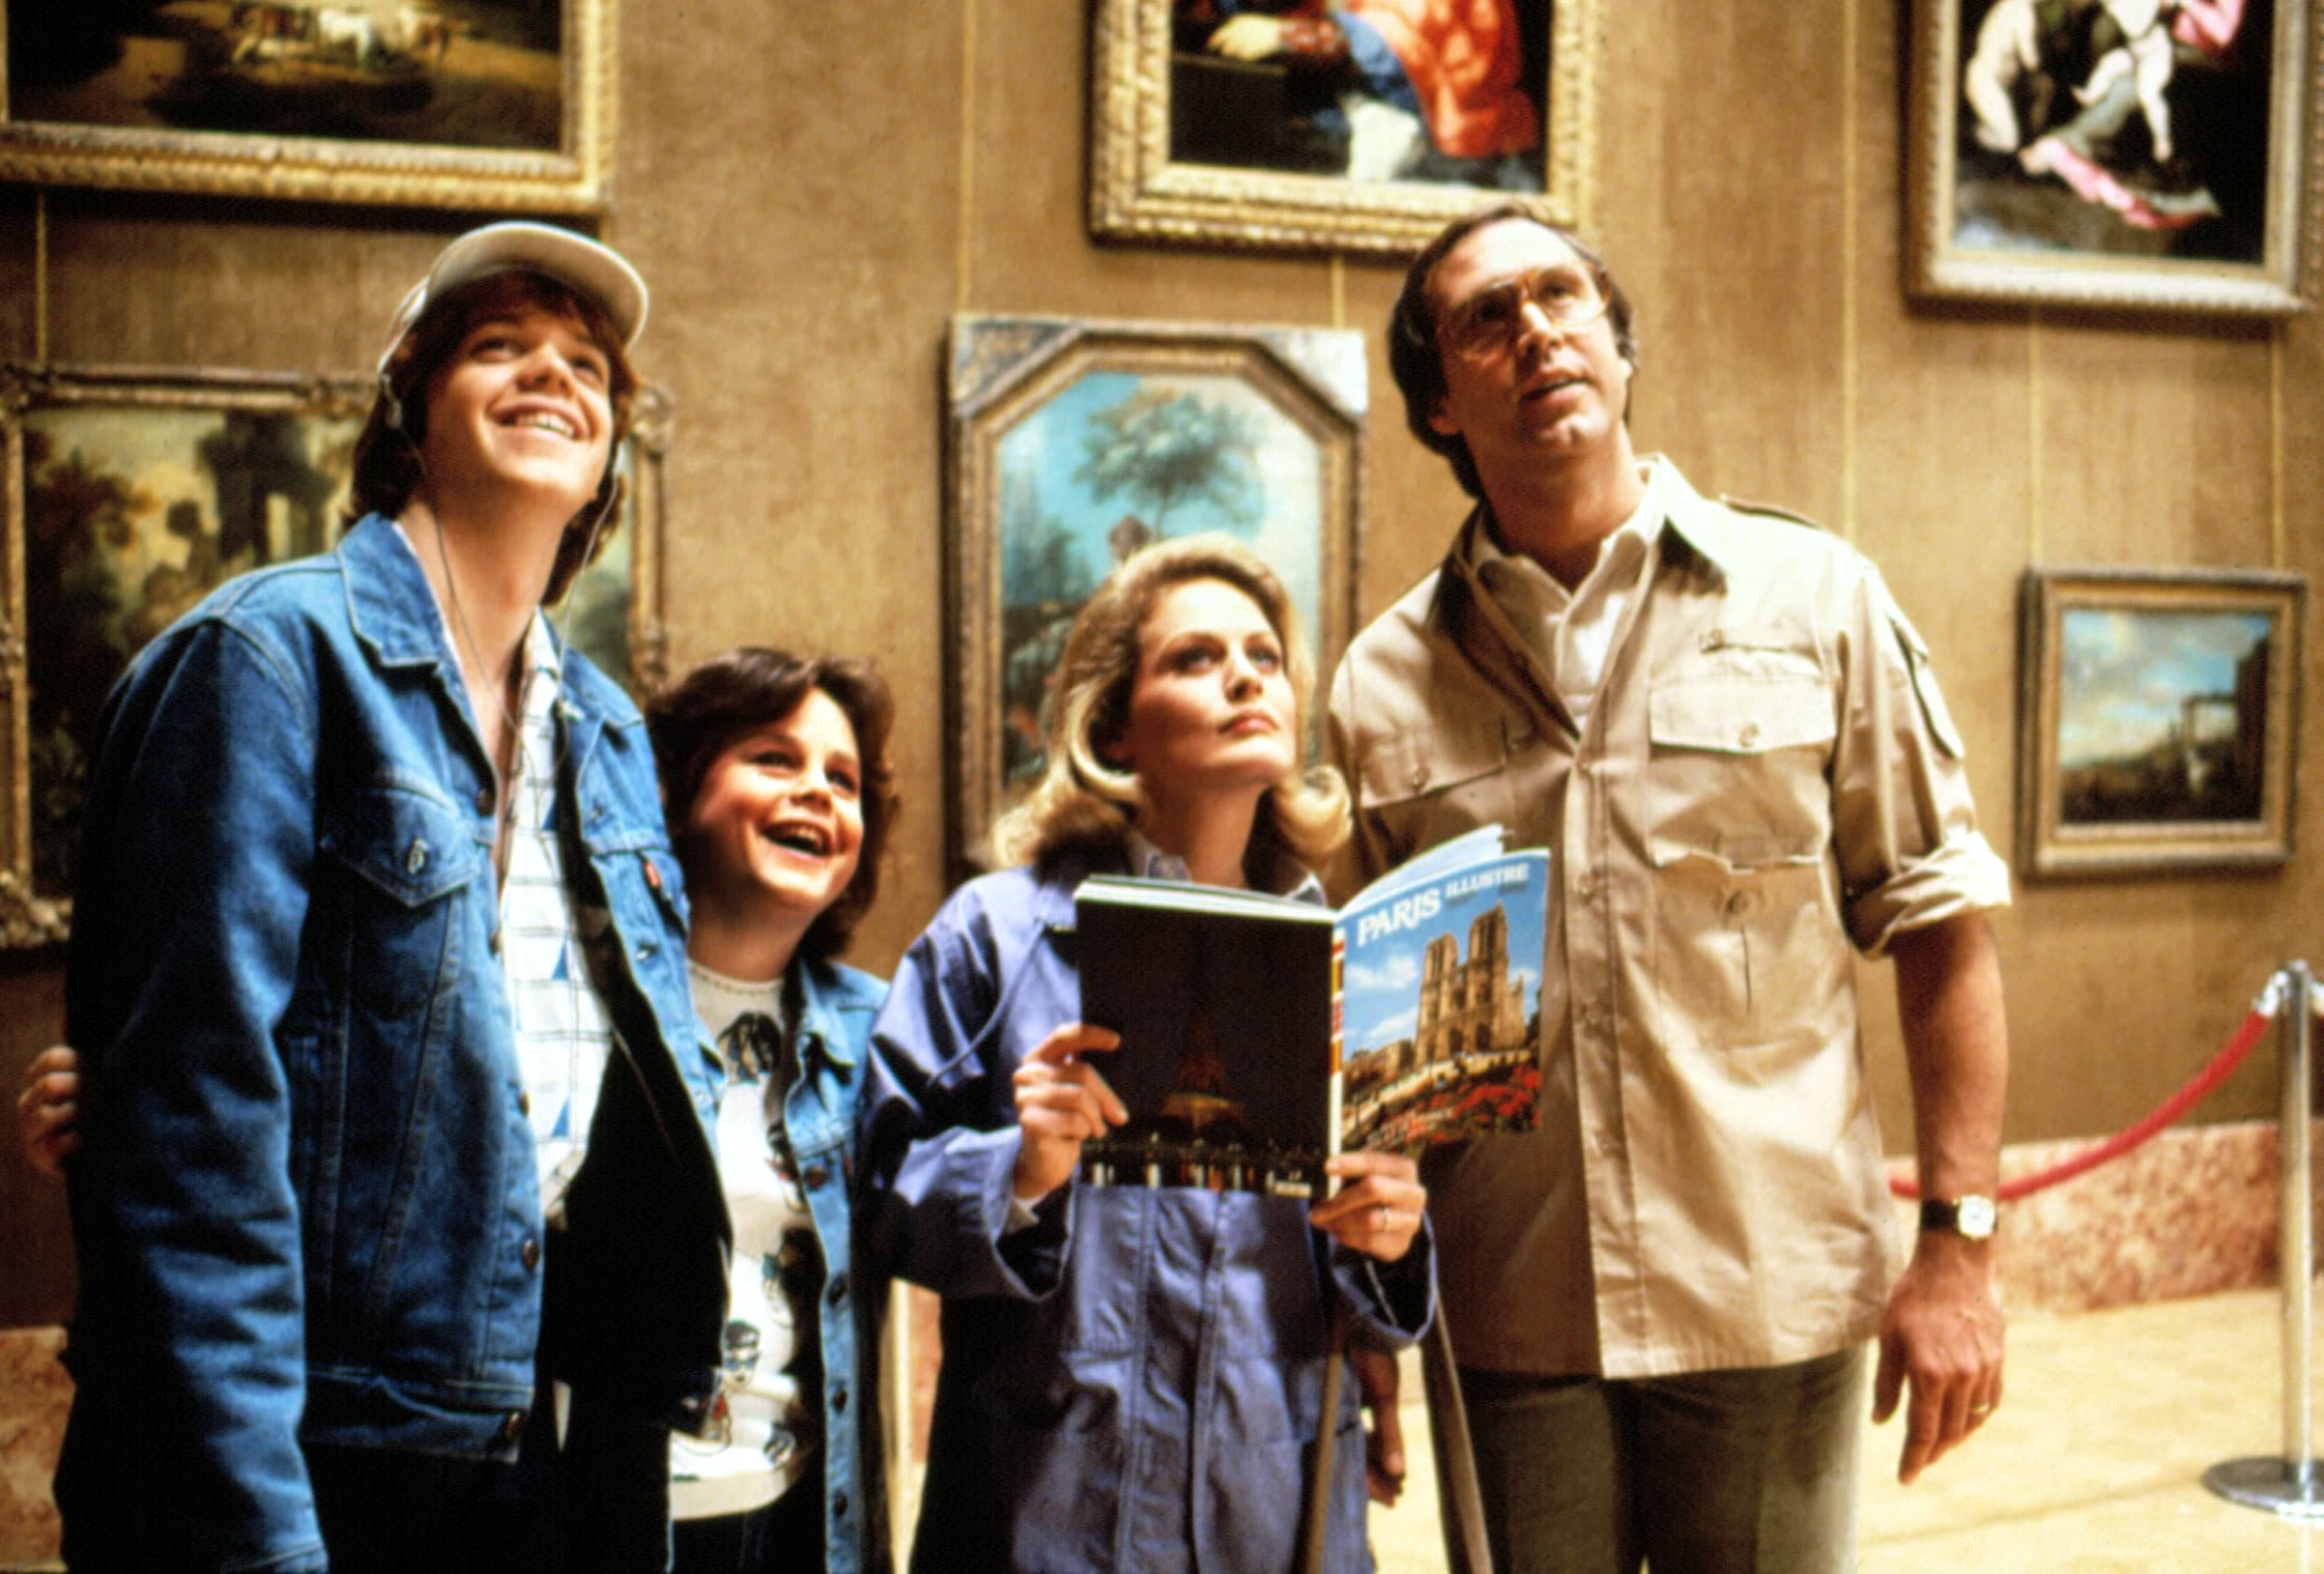 NATIONAL LAMPOON'S EUROPEAN VACATION, Jason Lively, Dana Hill, Beverly D'Angelo, Chevy Chase, 1985